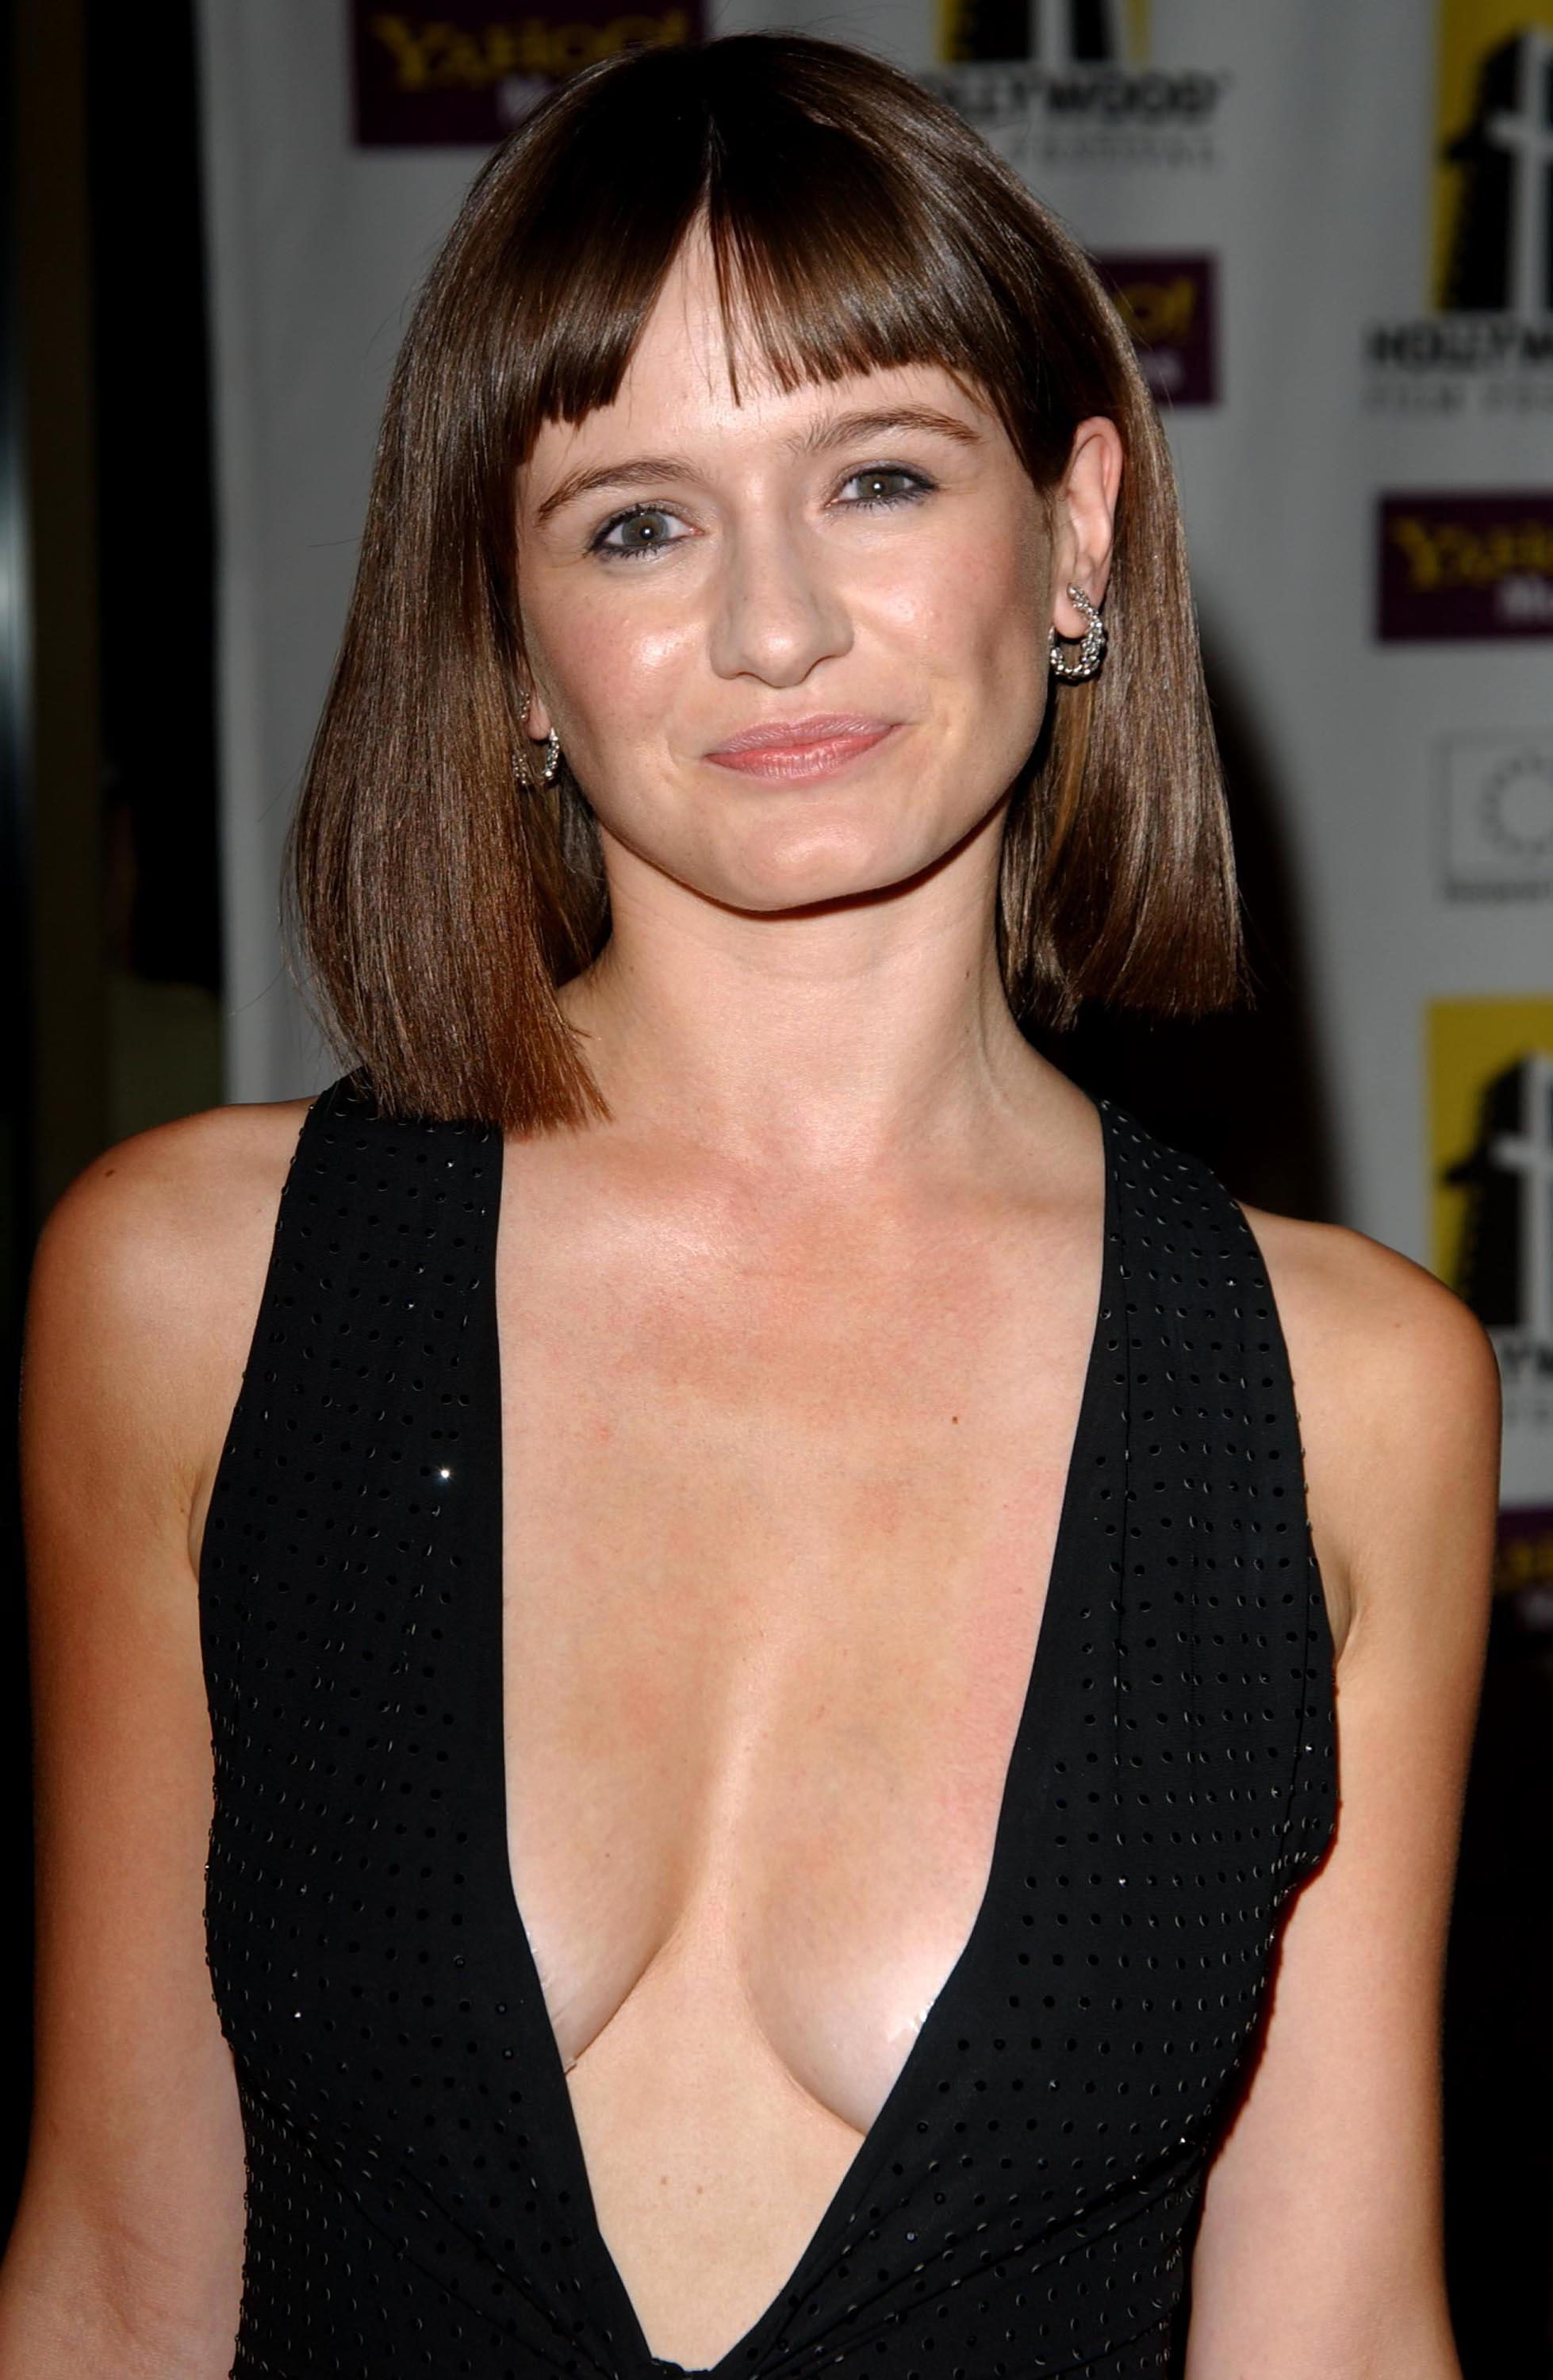 emily mortimer filmemily mortimer eye, emily mortimer age, emily mortimer film, emily mortimer notting hill, emily mortimer filmleri, emily mortimer wdw, emily mortimer fansite, emily mortimer bruce willis, emily mortimer speaking russian, emily mortimer instagram, emily mortimer ewan mcgregor film, emily mortimer vanity fair, emily mortimer, emily mortimer imdb, emily mortimer husband, emily mortimer wiki, emily mortimer and alessandro nivola, emily mortimer twitter, emily mortimer newsroom, emily mortimer actress